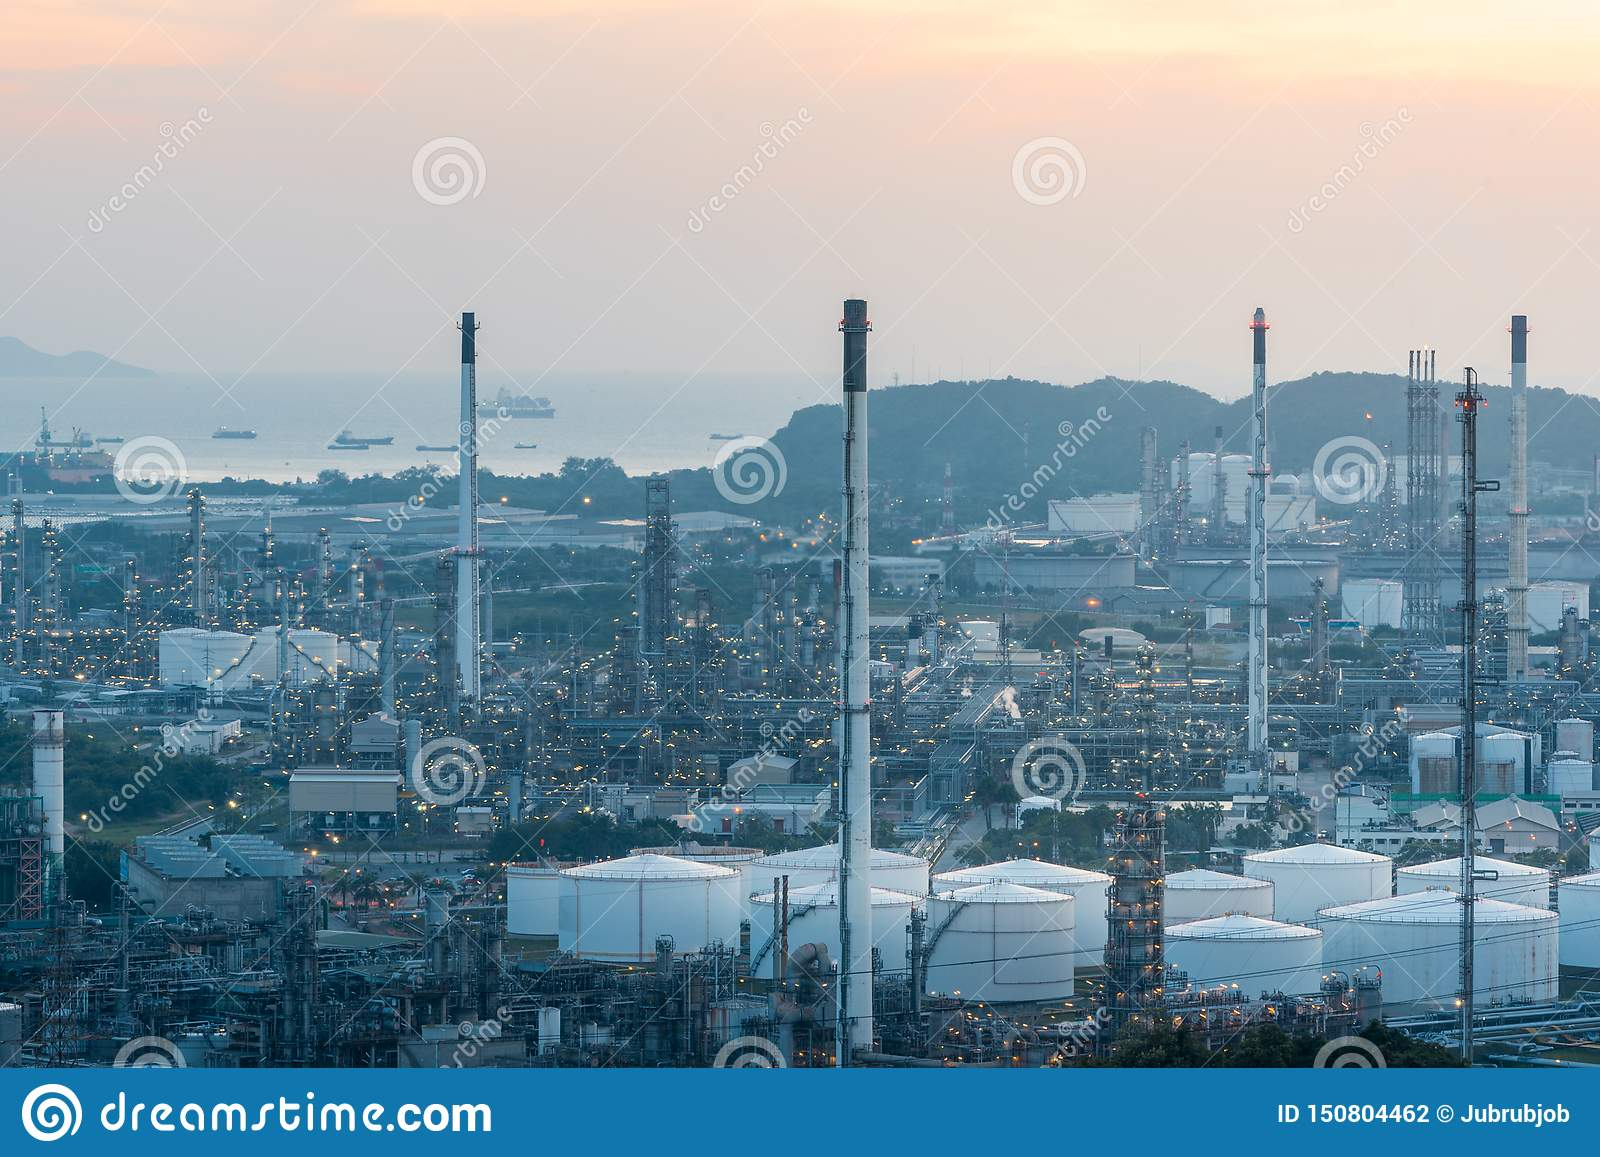 Aerial view of Oil and gas industry - refinery at sunset - factory - petrochemical plant, Shot from drone of Oil refinery and